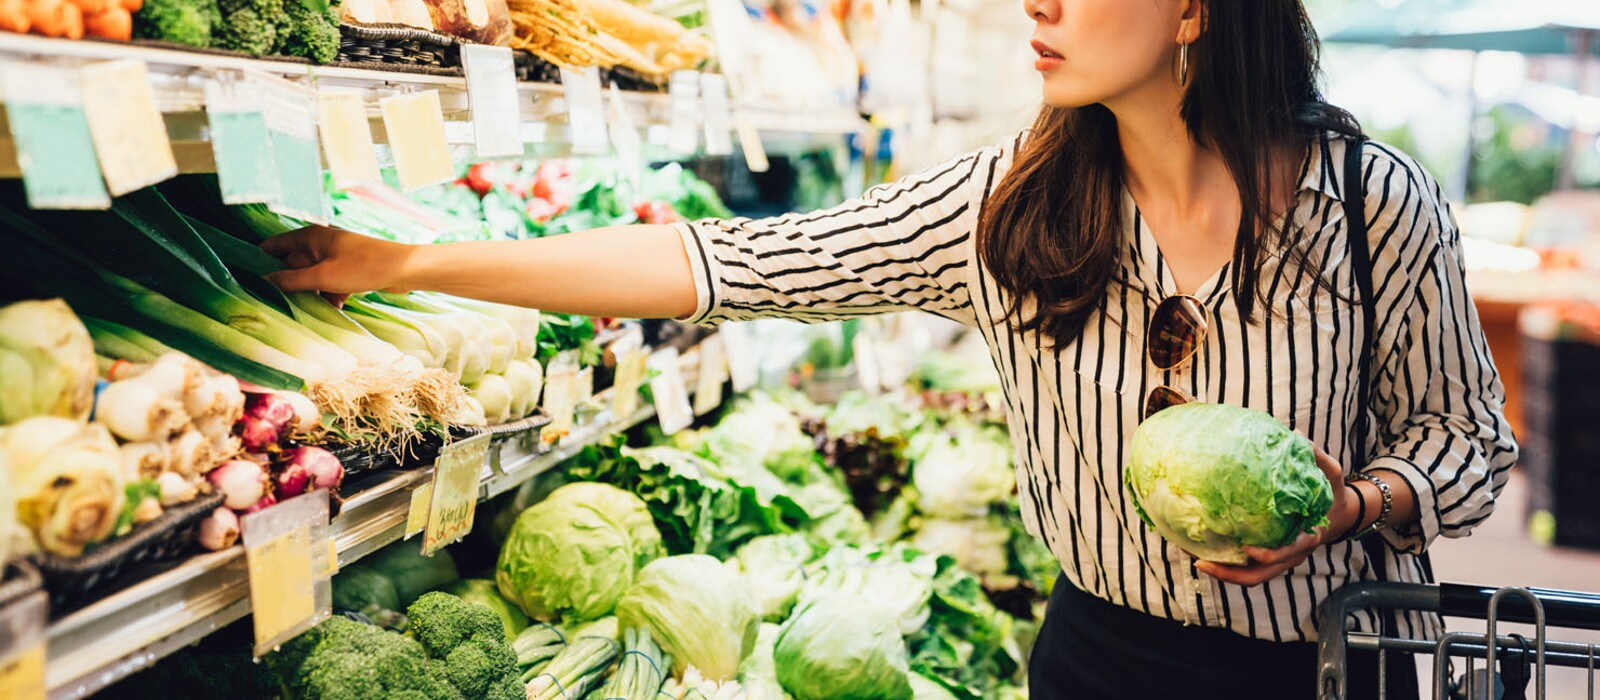 A Practical Mom's Guide to Buying Organic Food